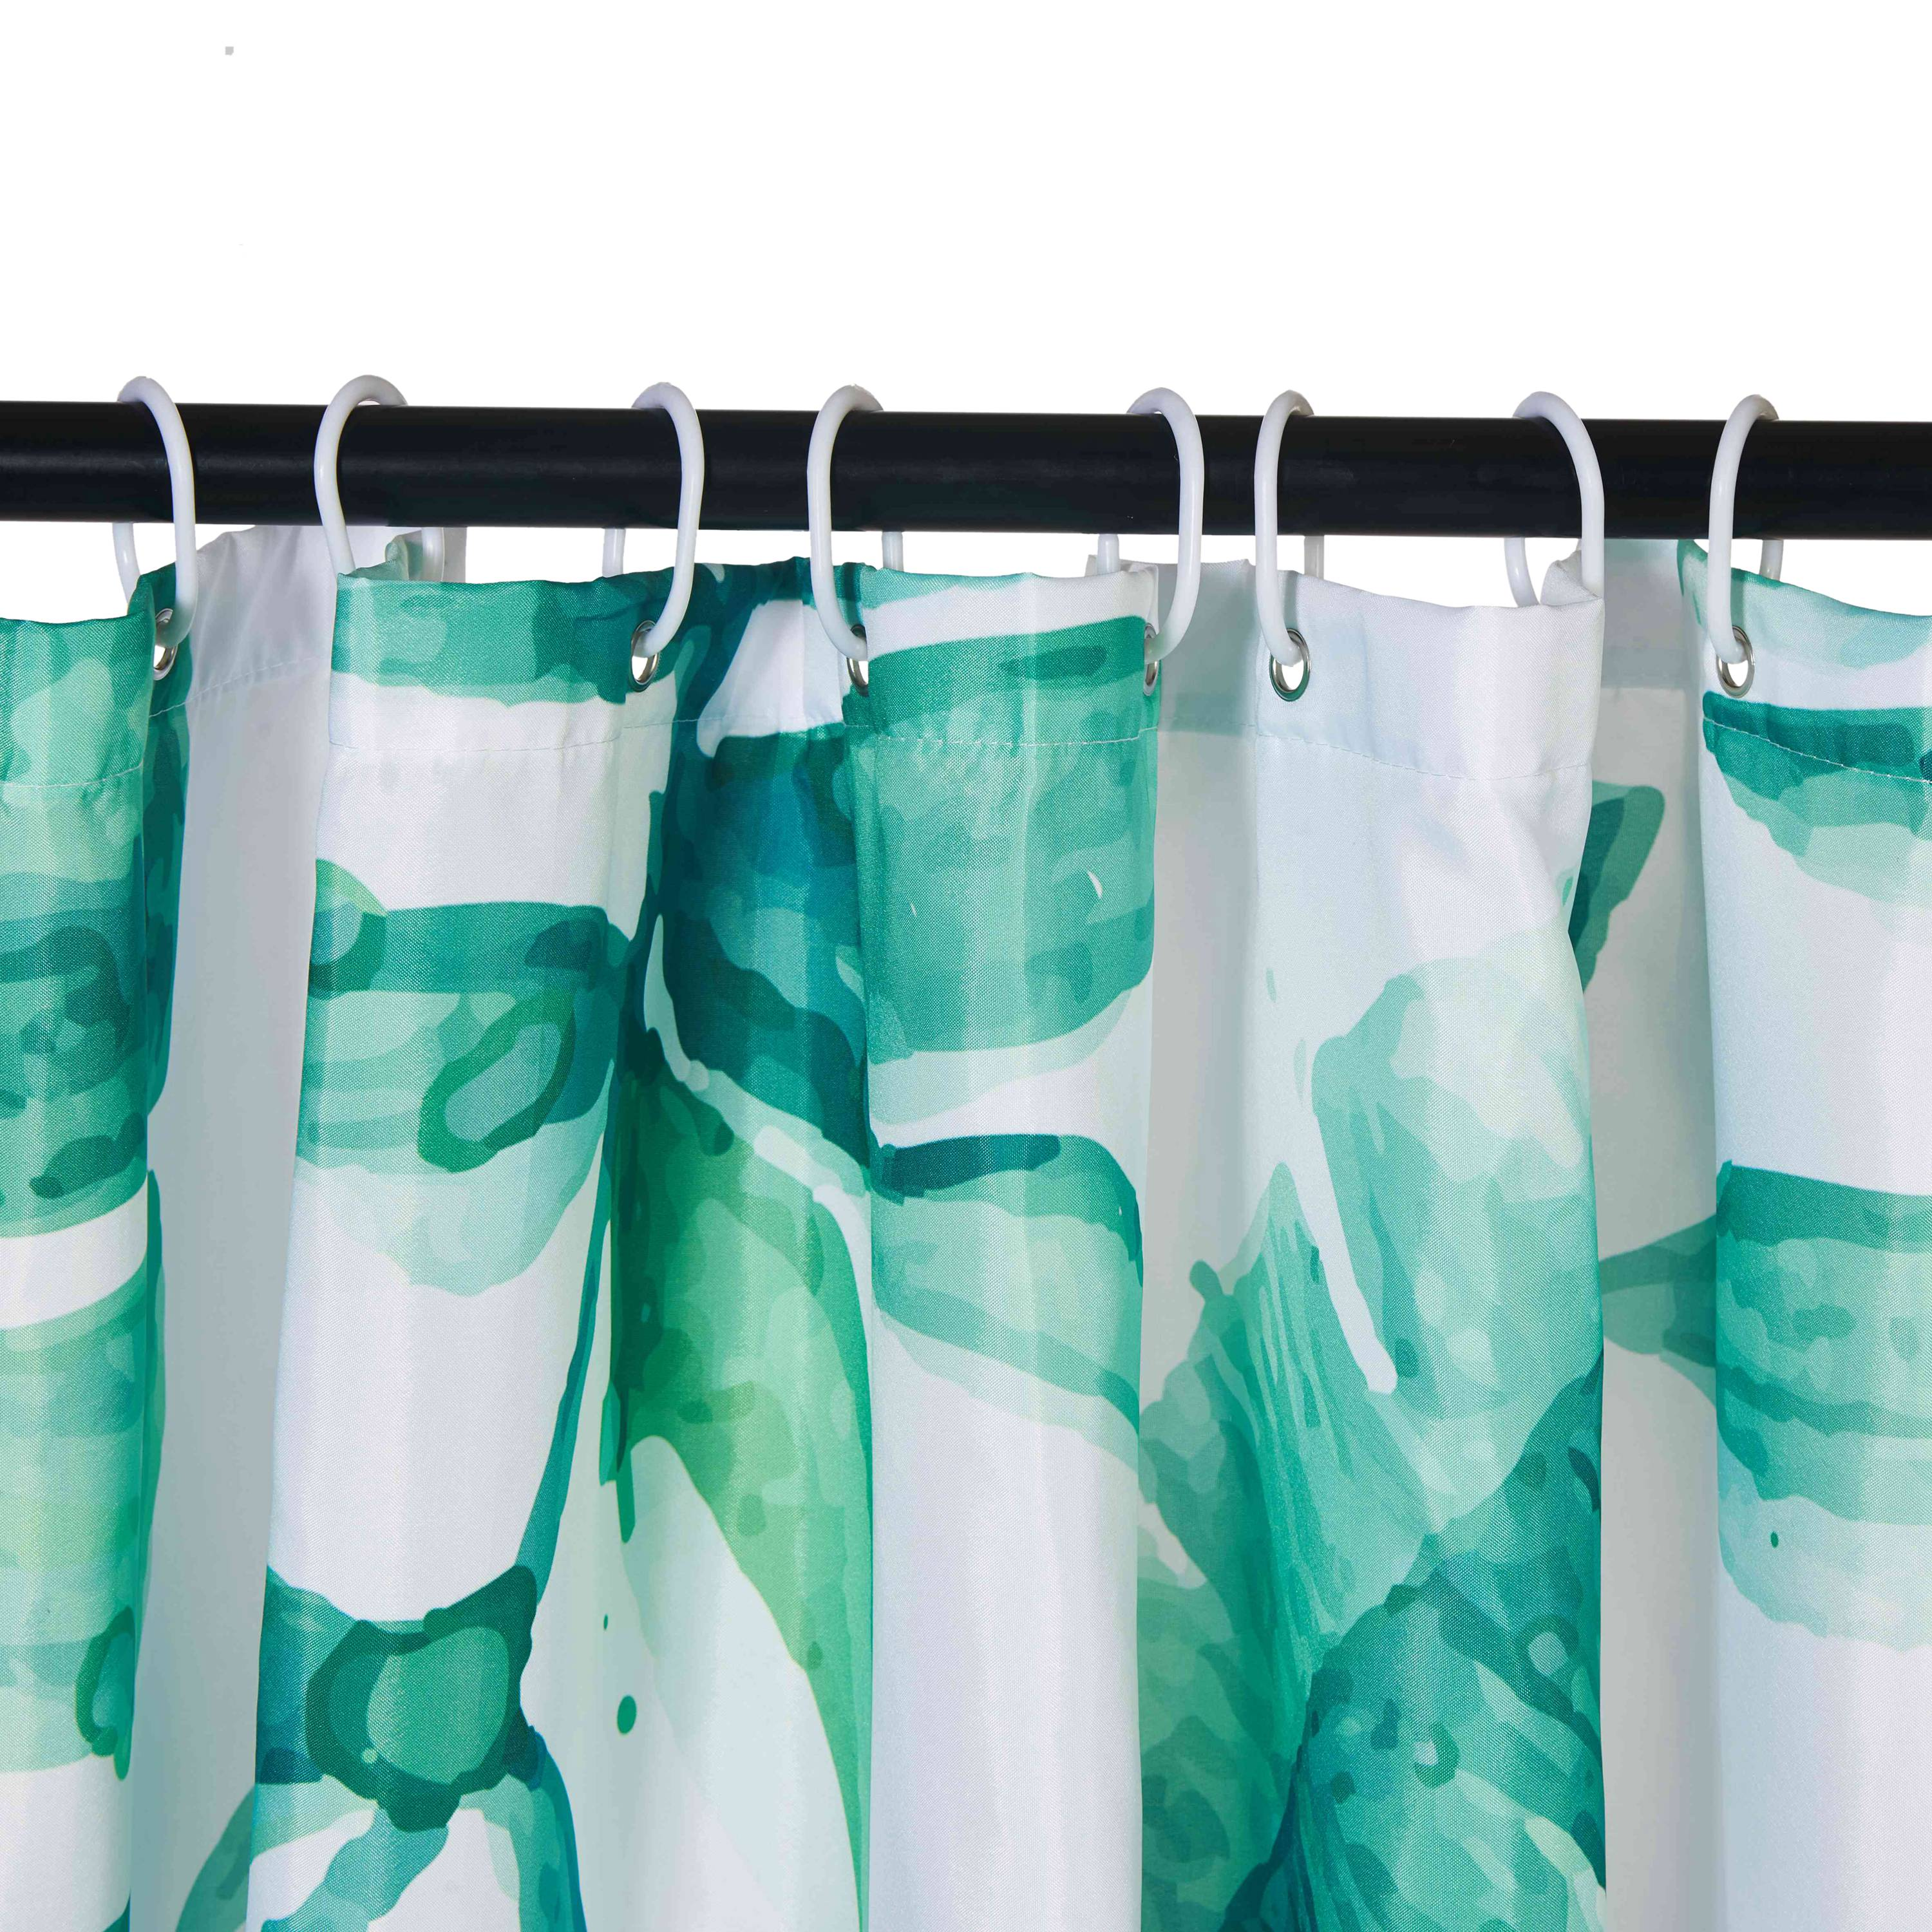 Details About Waterproof Shower Curtain Hook Extra Long Bath Room Decor Plastic Hook Ring Sets